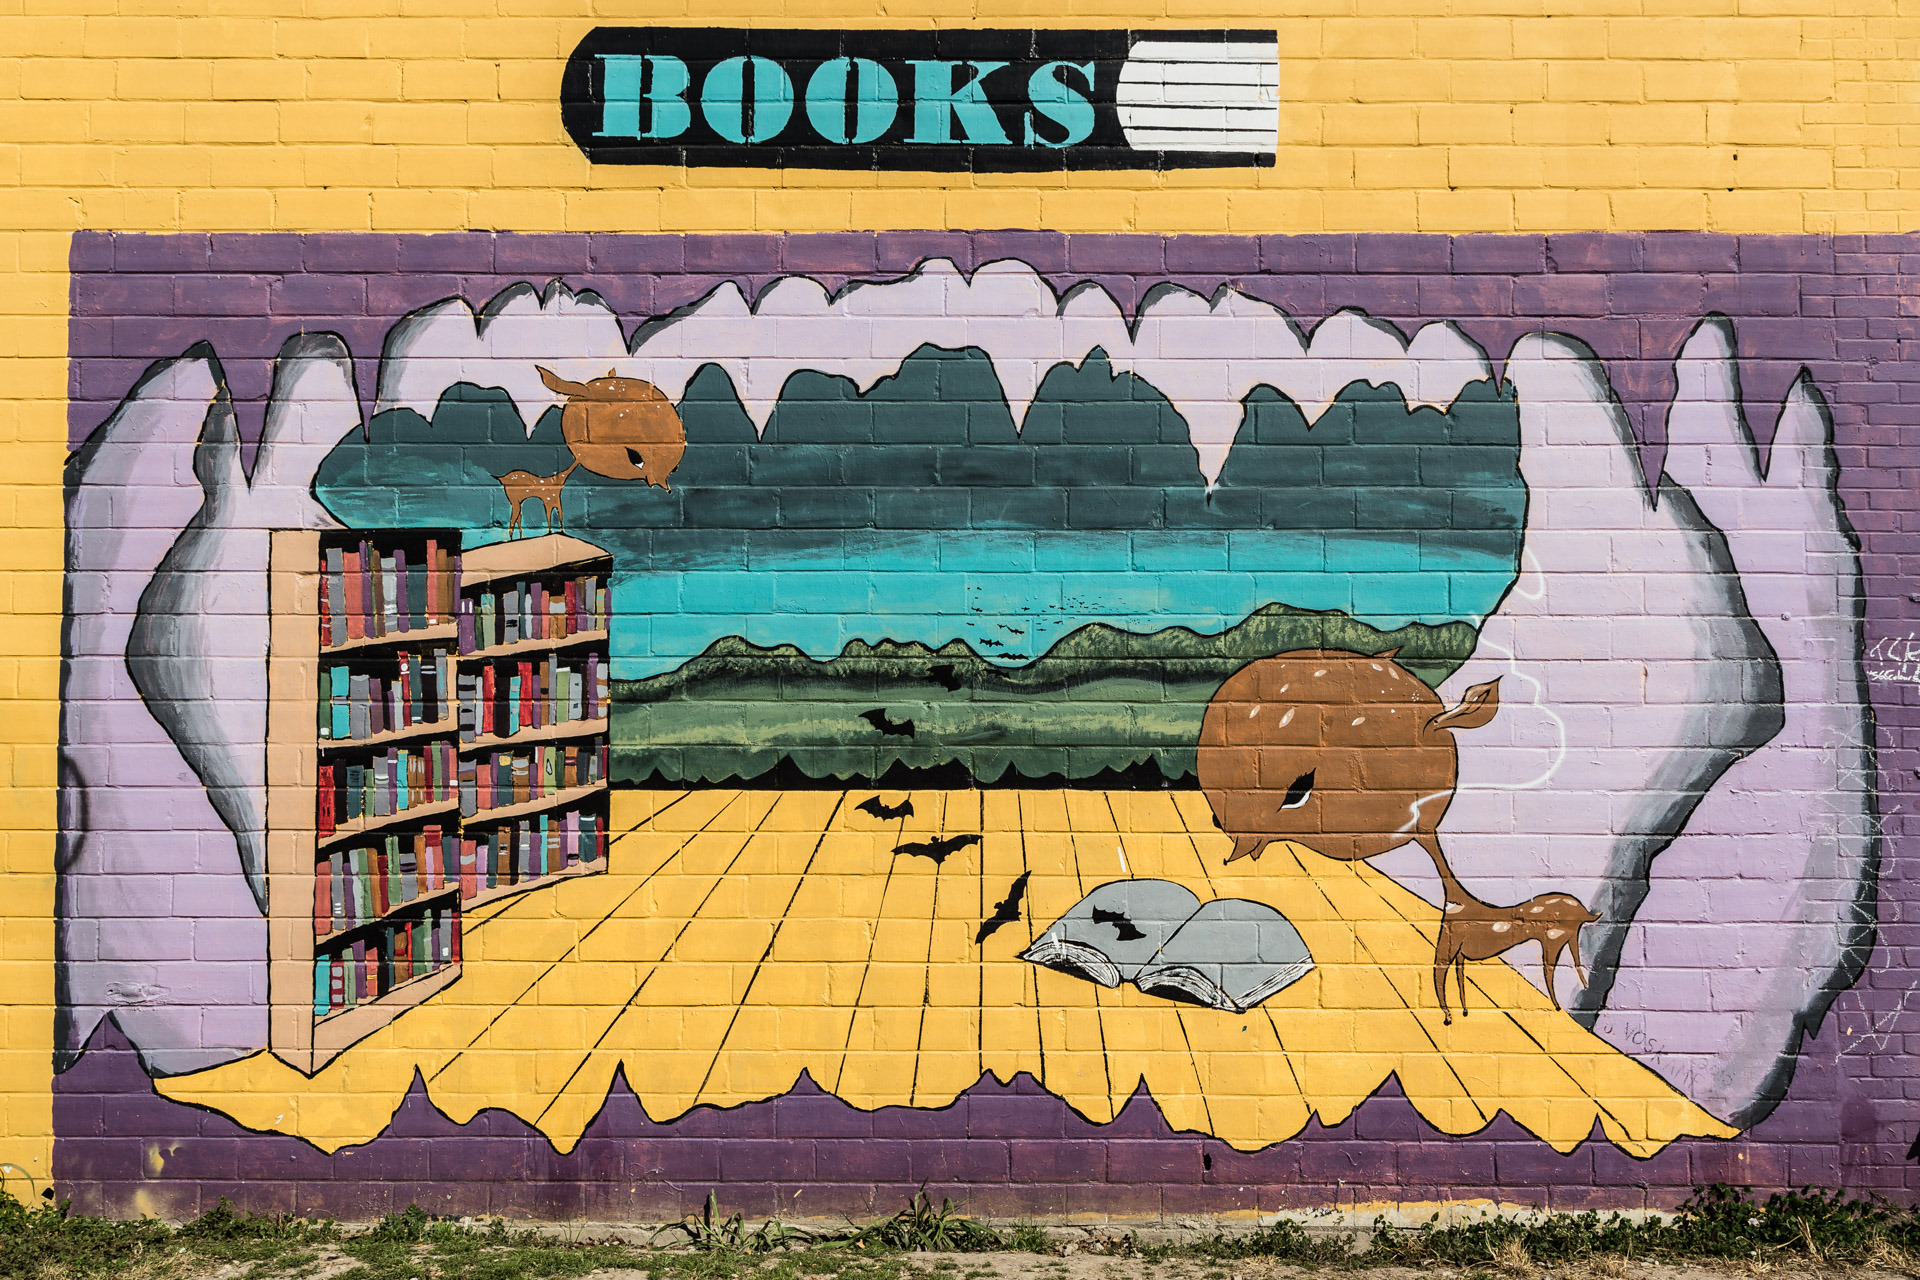 Austin Street Art (books)